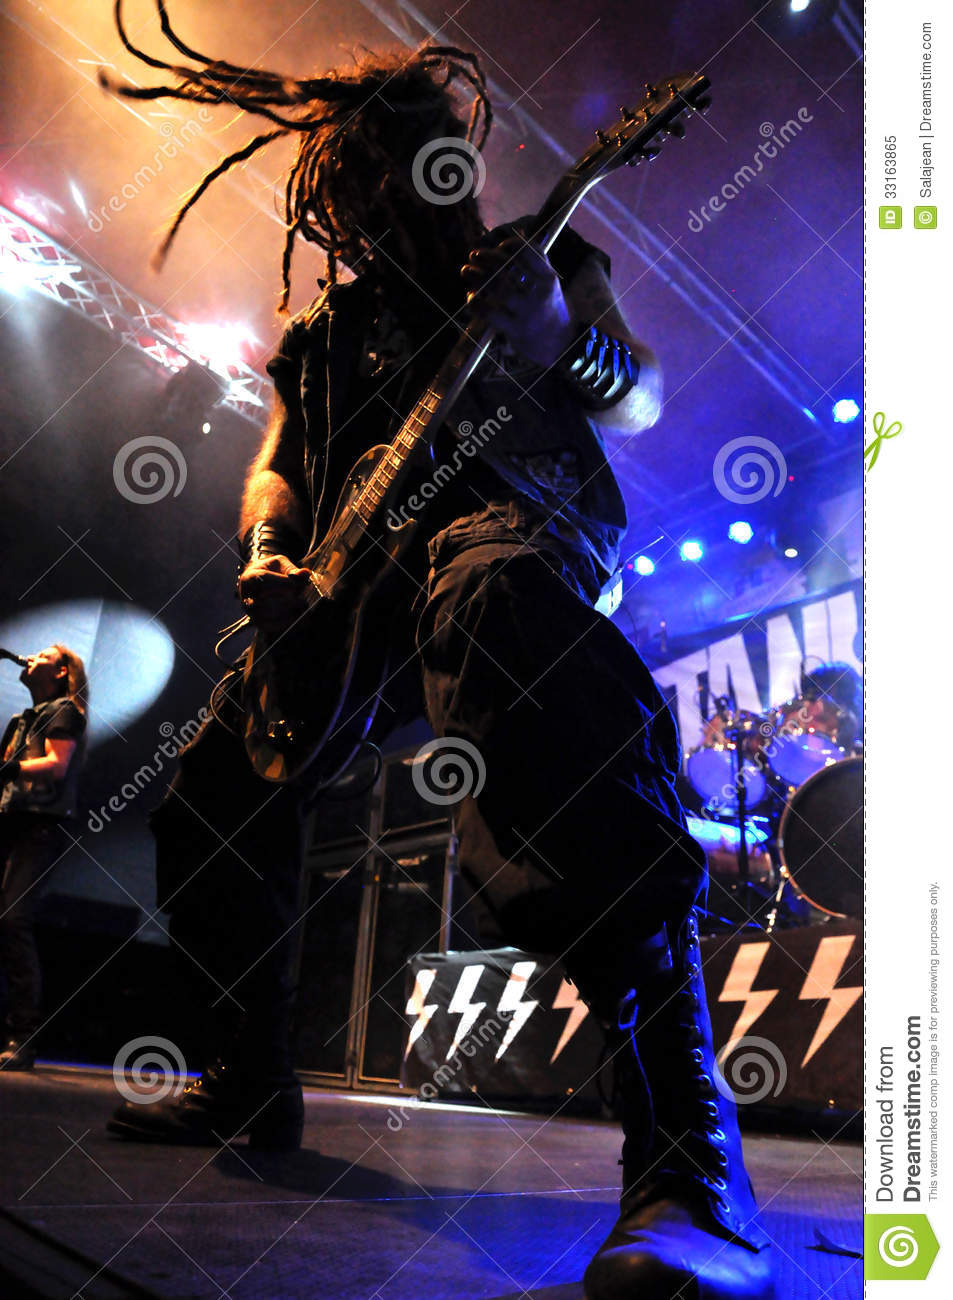 Heavy metal, rock concert live